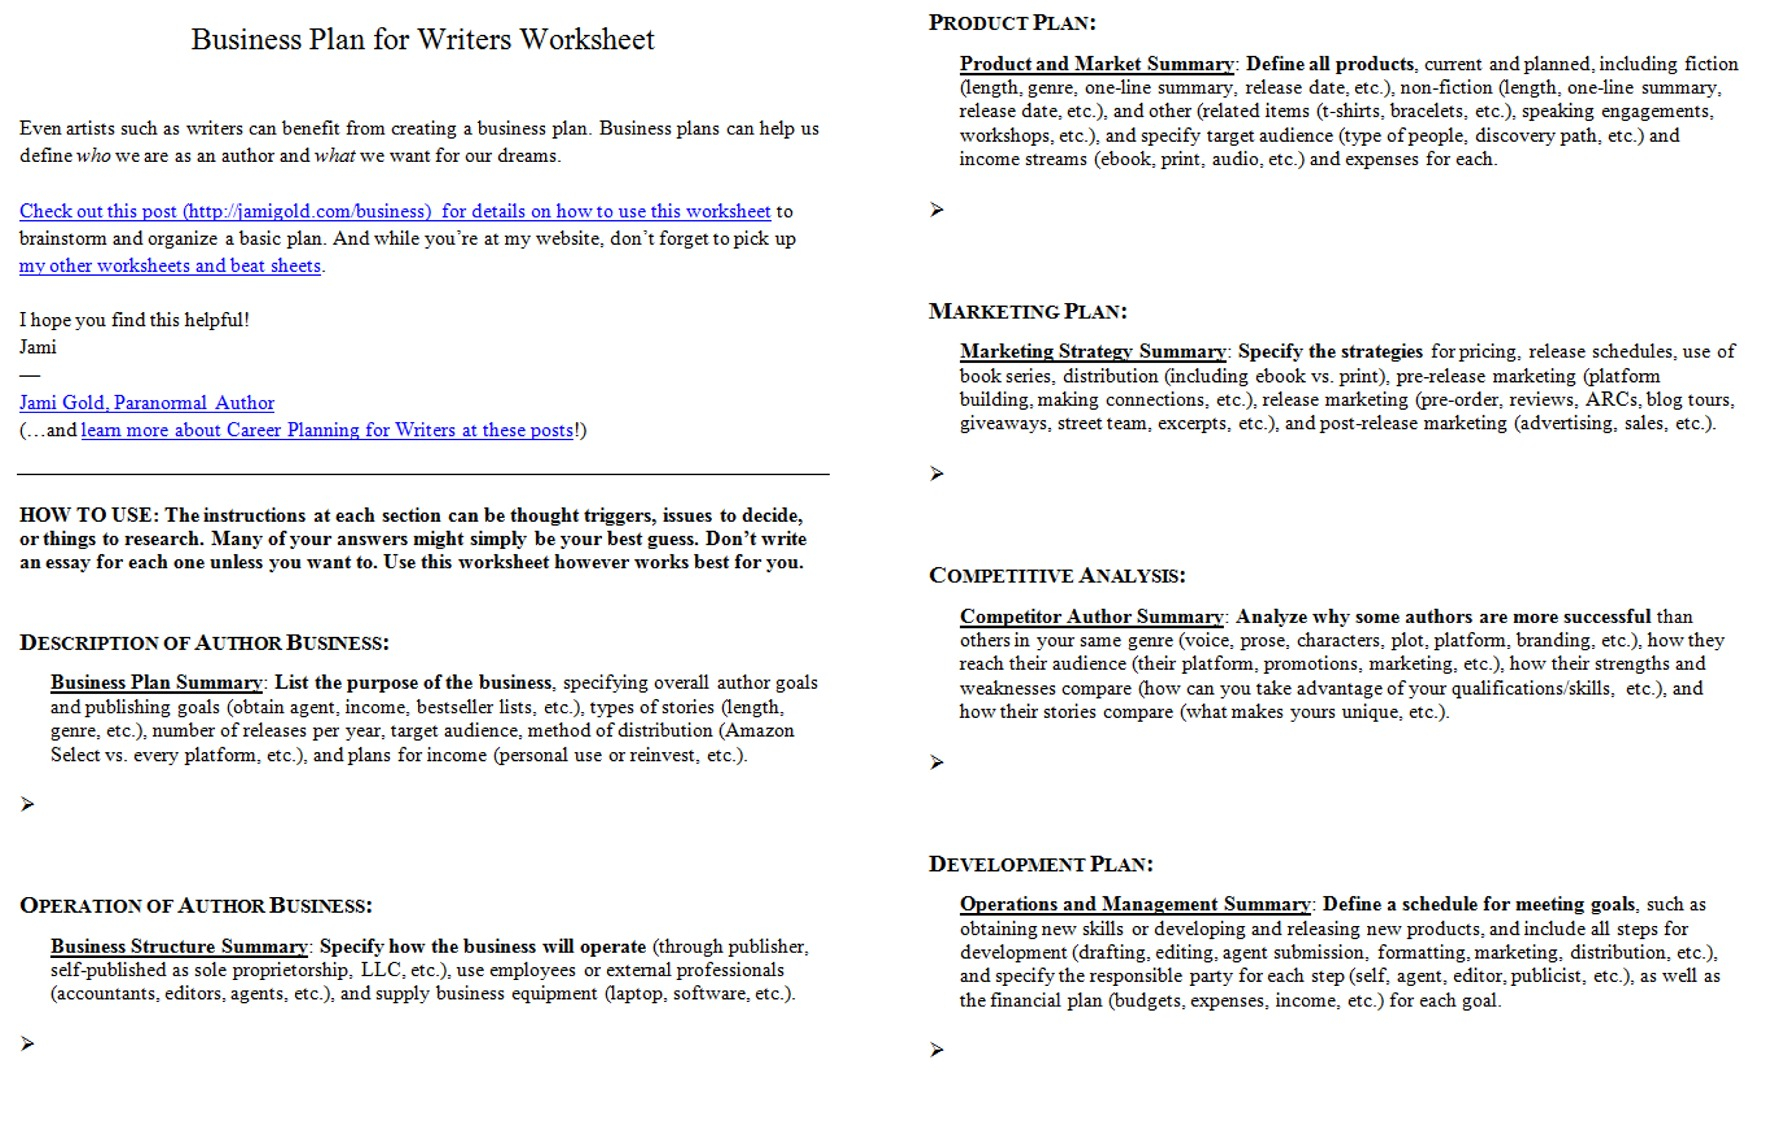 Aldiablosus  Pleasant Worksheets For Writers  Jami Gold Paranormal Author With Foxy Screen Shot Of Both Pages Of The Business Plan For Writers Worksheet With Appealing Bill Nye Simple Machines Worksheet Answers Also Chapter  Viruses And Bacteria Worksheet Answers In Addition Food Inc Movie Worksheet Answers And Polynomials Worksheet As Well As Mole To Grams Grams To Moles Conversions Worksheet Additionally Chemistry Unit  Worksheet  From Jamigoldcom With Aldiablosus  Foxy Worksheets For Writers  Jami Gold Paranormal Author With Appealing Screen Shot Of Both Pages Of The Business Plan For Writers Worksheet And Pleasant Bill Nye Simple Machines Worksheet Answers Also Chapter  Viruses And Bacteria Worksheet Answers In Addition Food Inc Movie Worksheet Answers From Jamigoldcom